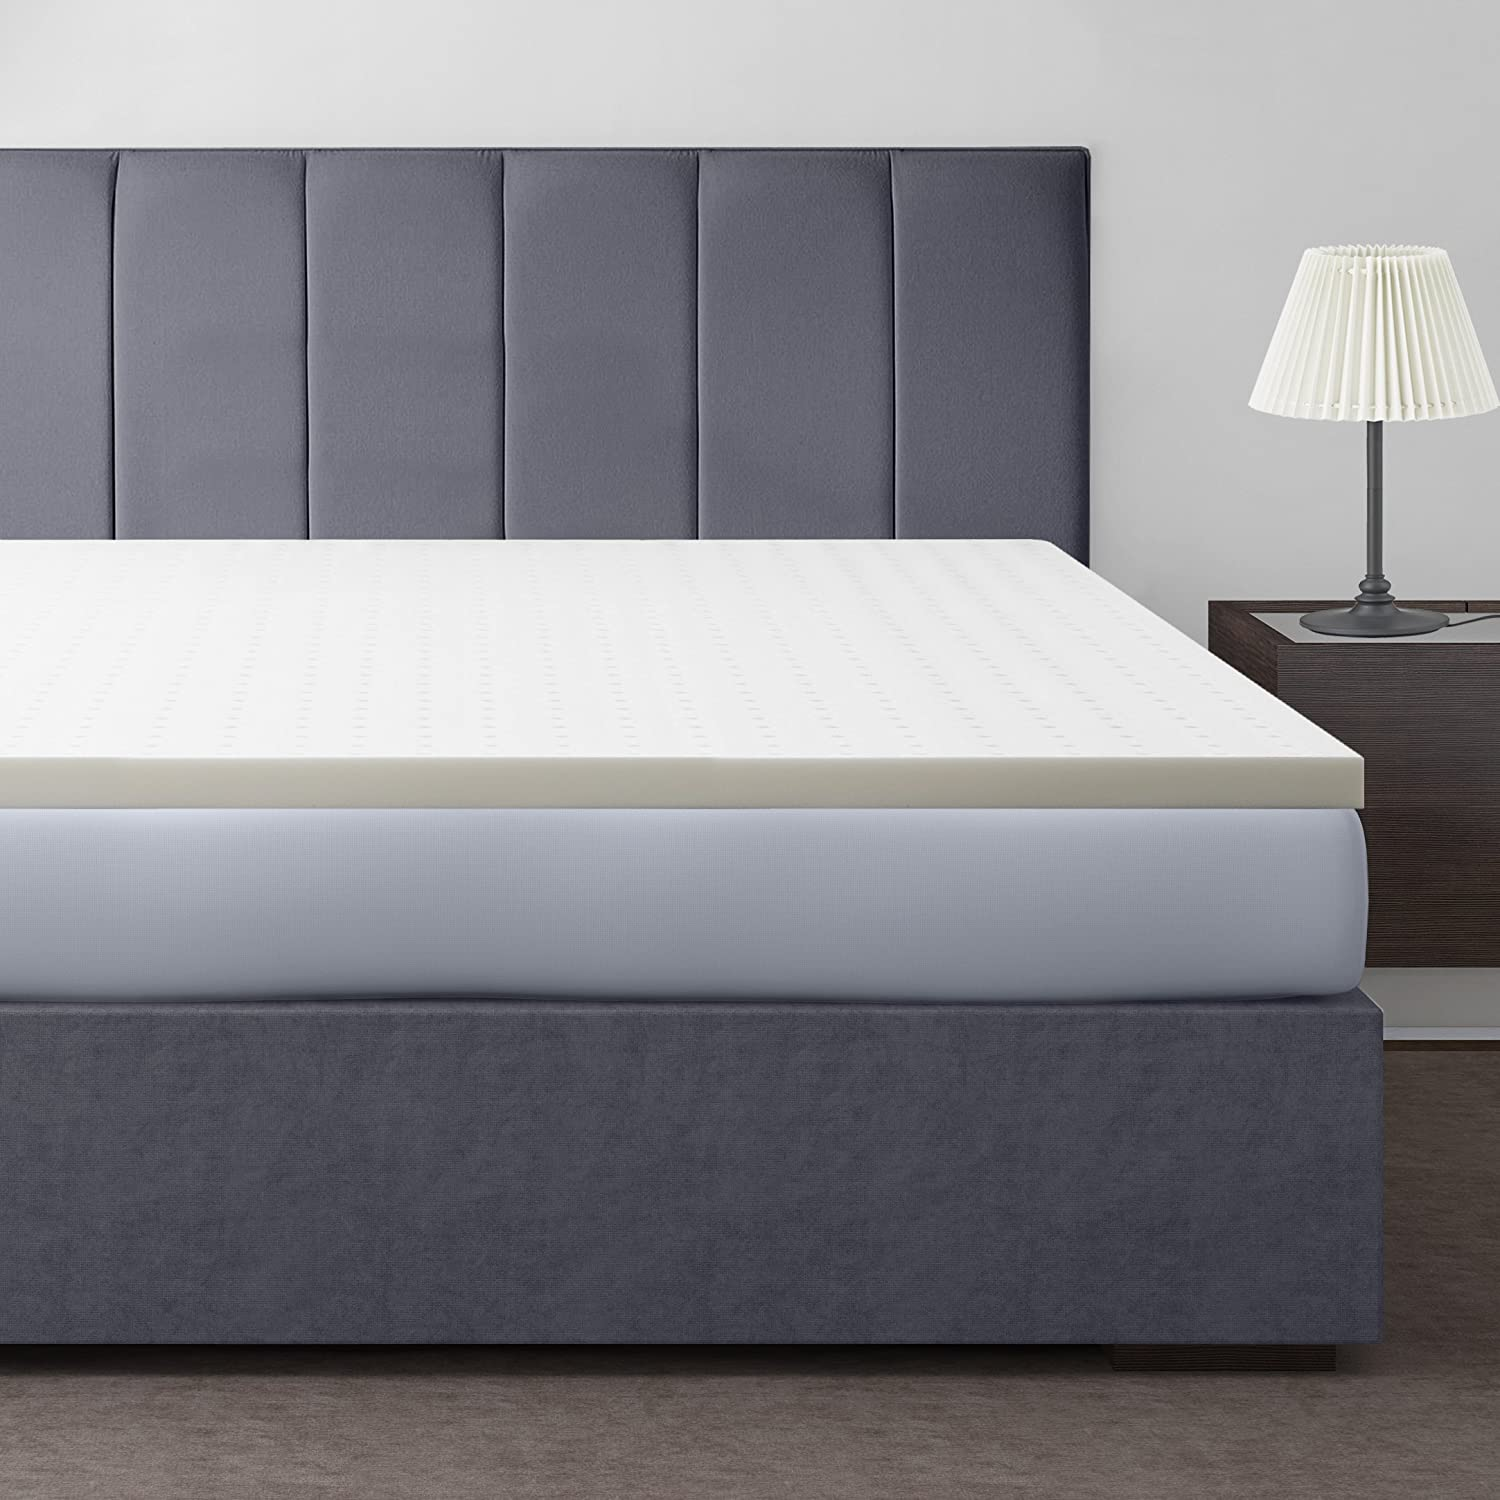 "Amazon.com: Best Price Mattress 2"" Ventilated Memory Foam Mattress Topper,  Queen: Home & Kitchen"